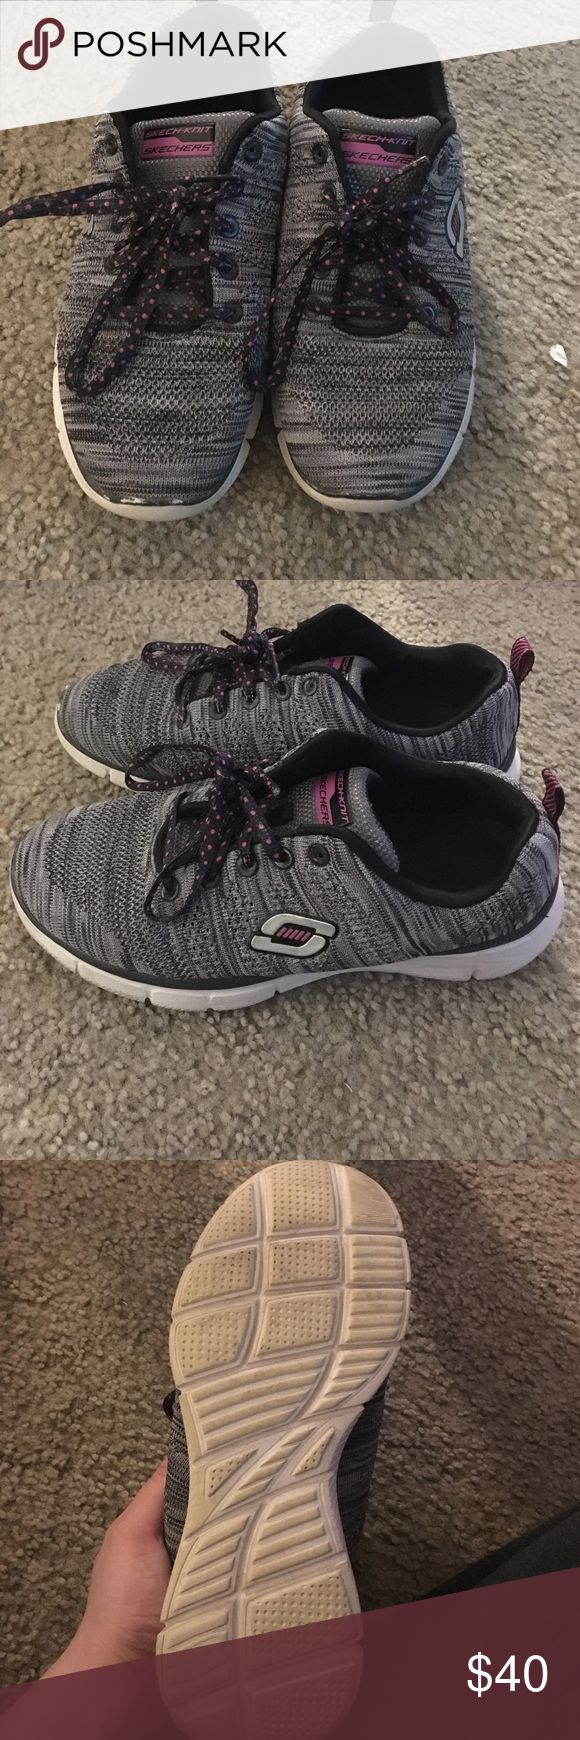 Sketchers sneakers Worn one day to work didn't work out cause I stand on a concrete floor all day Skechers Shoes Sneakers